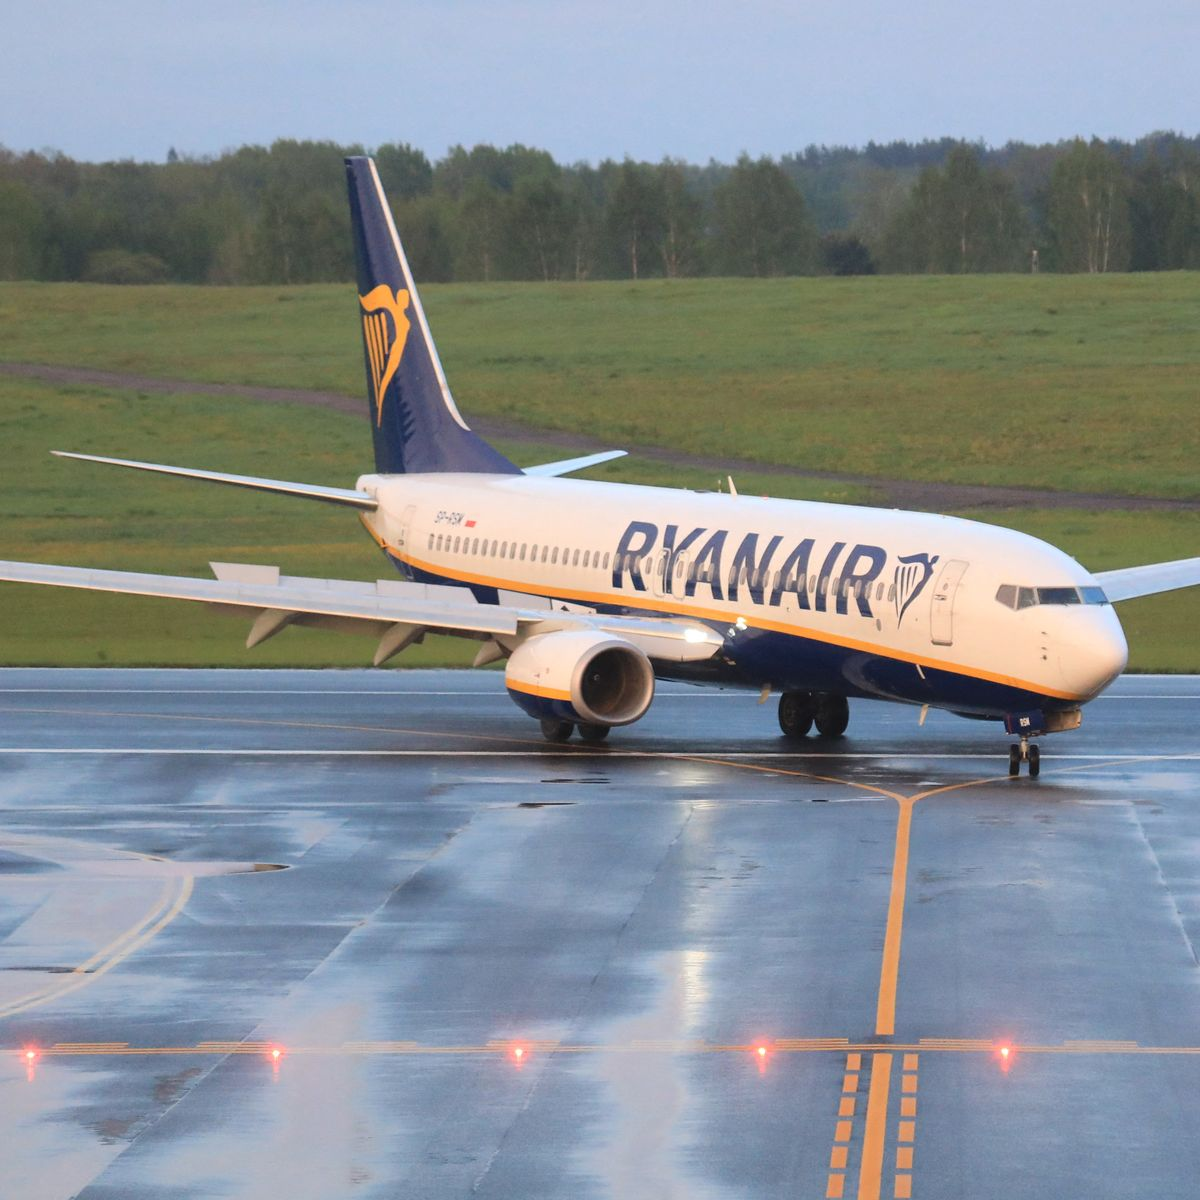 """Outrage as Ryanair plane """"hijacked"""" by Belarus to arrest dissident journalist"""